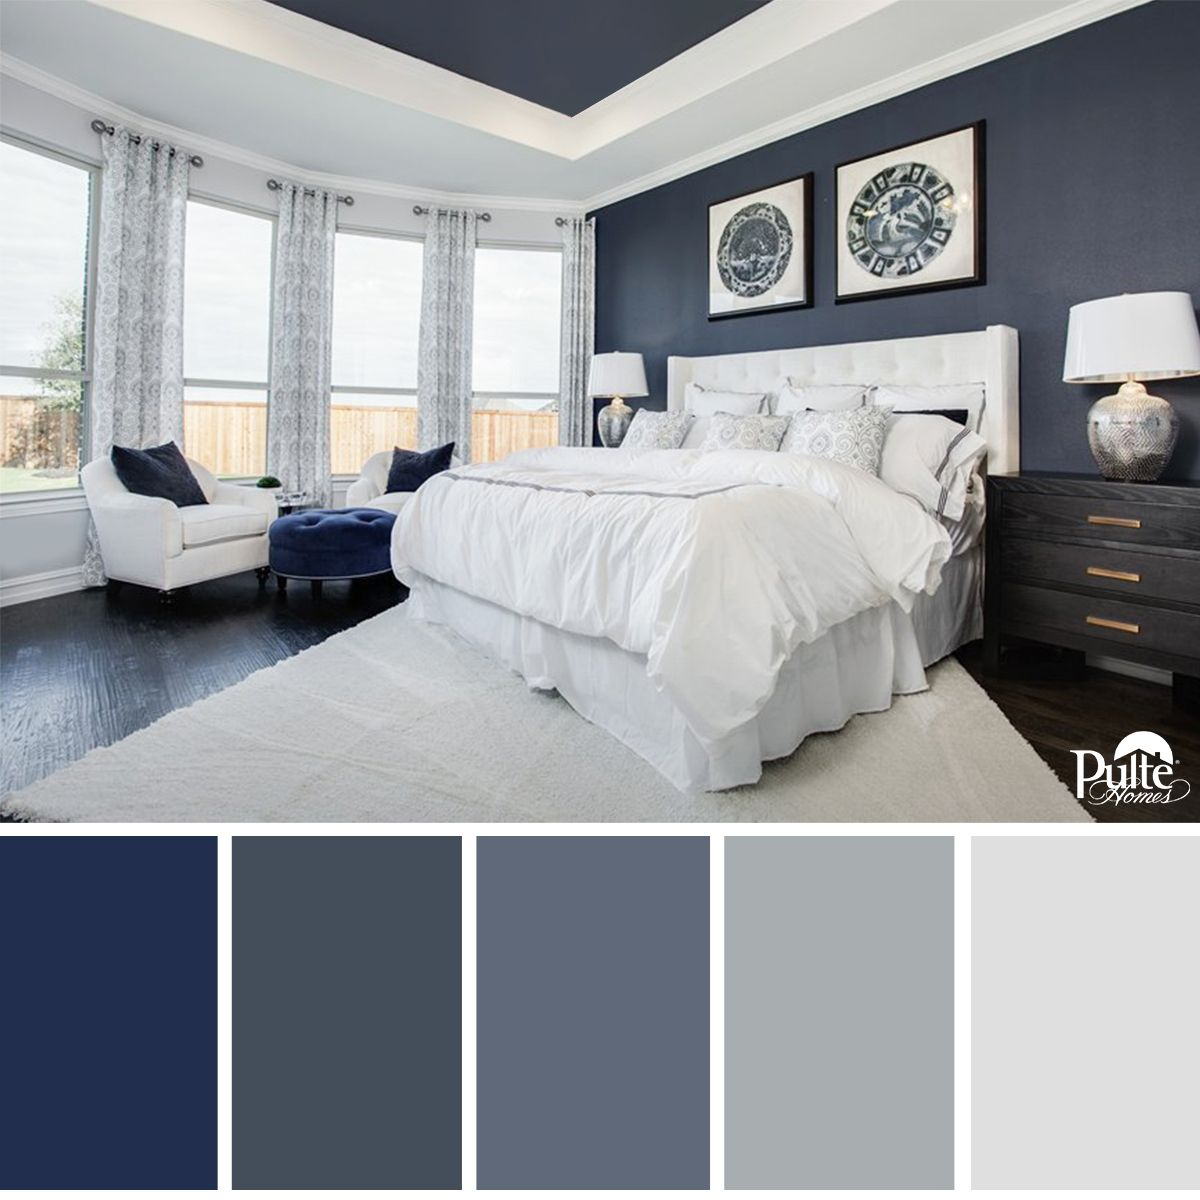 This Bedroom Design Has The Right Idea. The Rich Blue